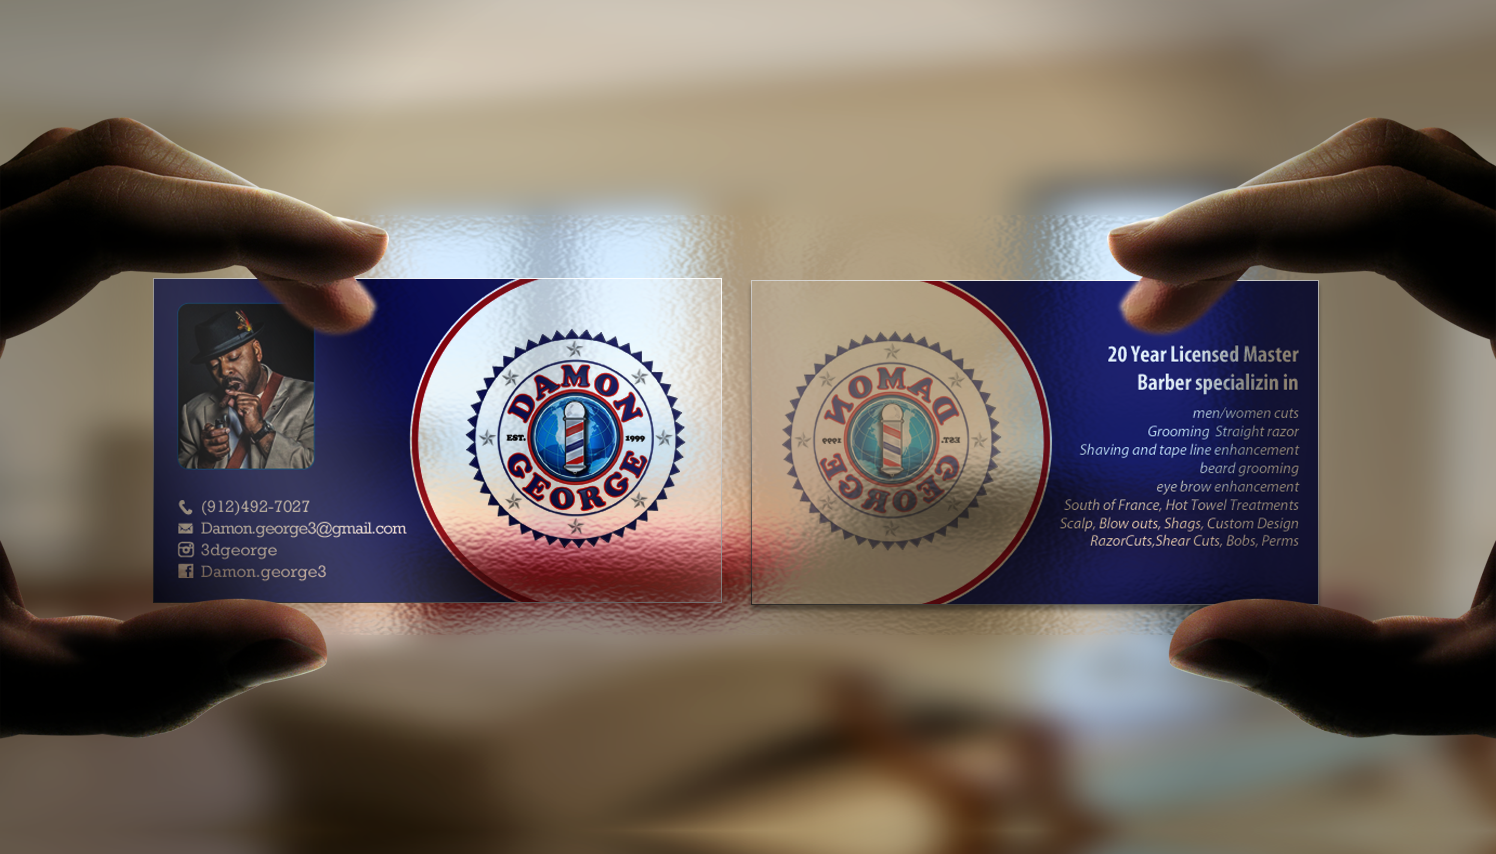 Barber Business Card Design For A Company By Chandrayaan Creative